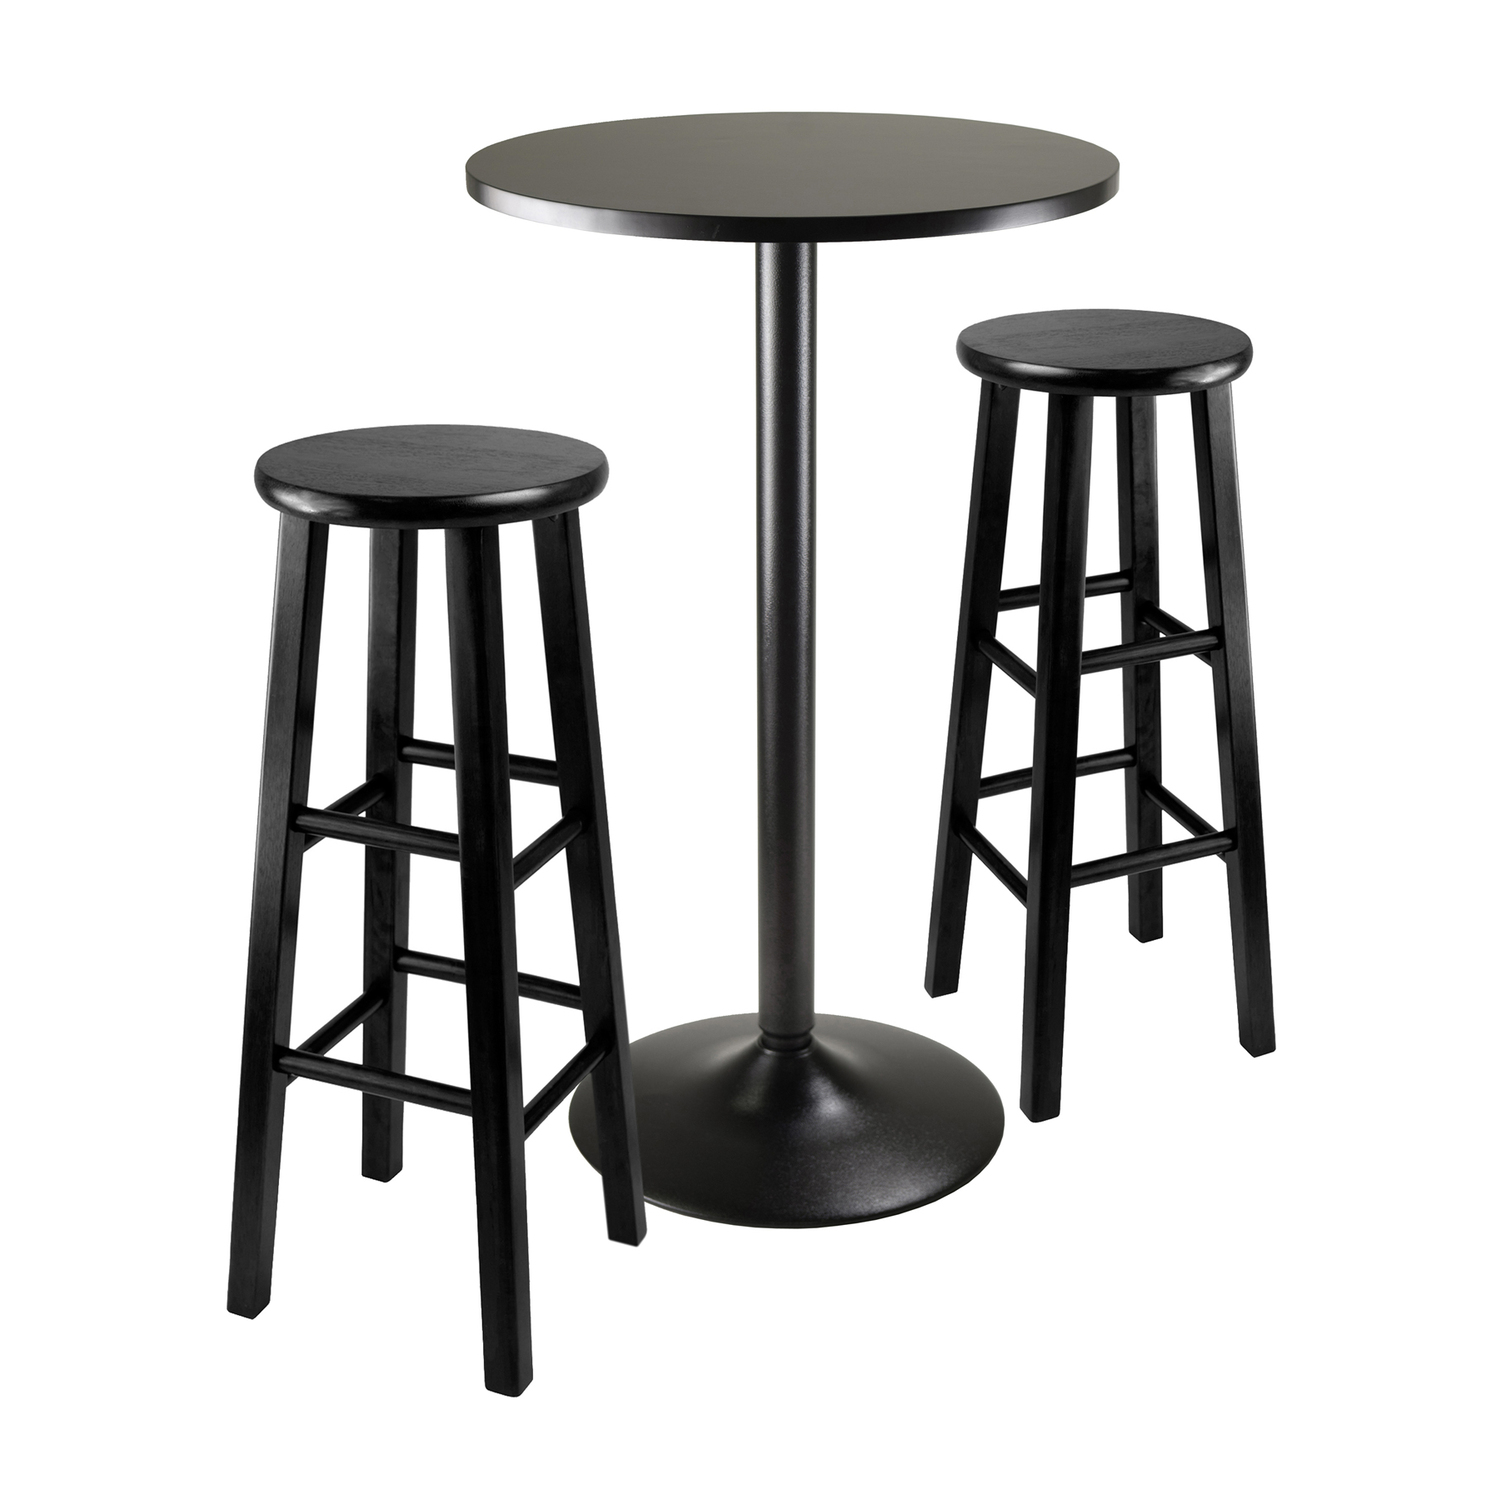 Obsidian 3 Piece Round Black Pub Table Set - [20331]  sc 1 st  OJ Commerce & Obsidian 3 Piece Round Black Pub Table Set - $311.99 | OJCommerce